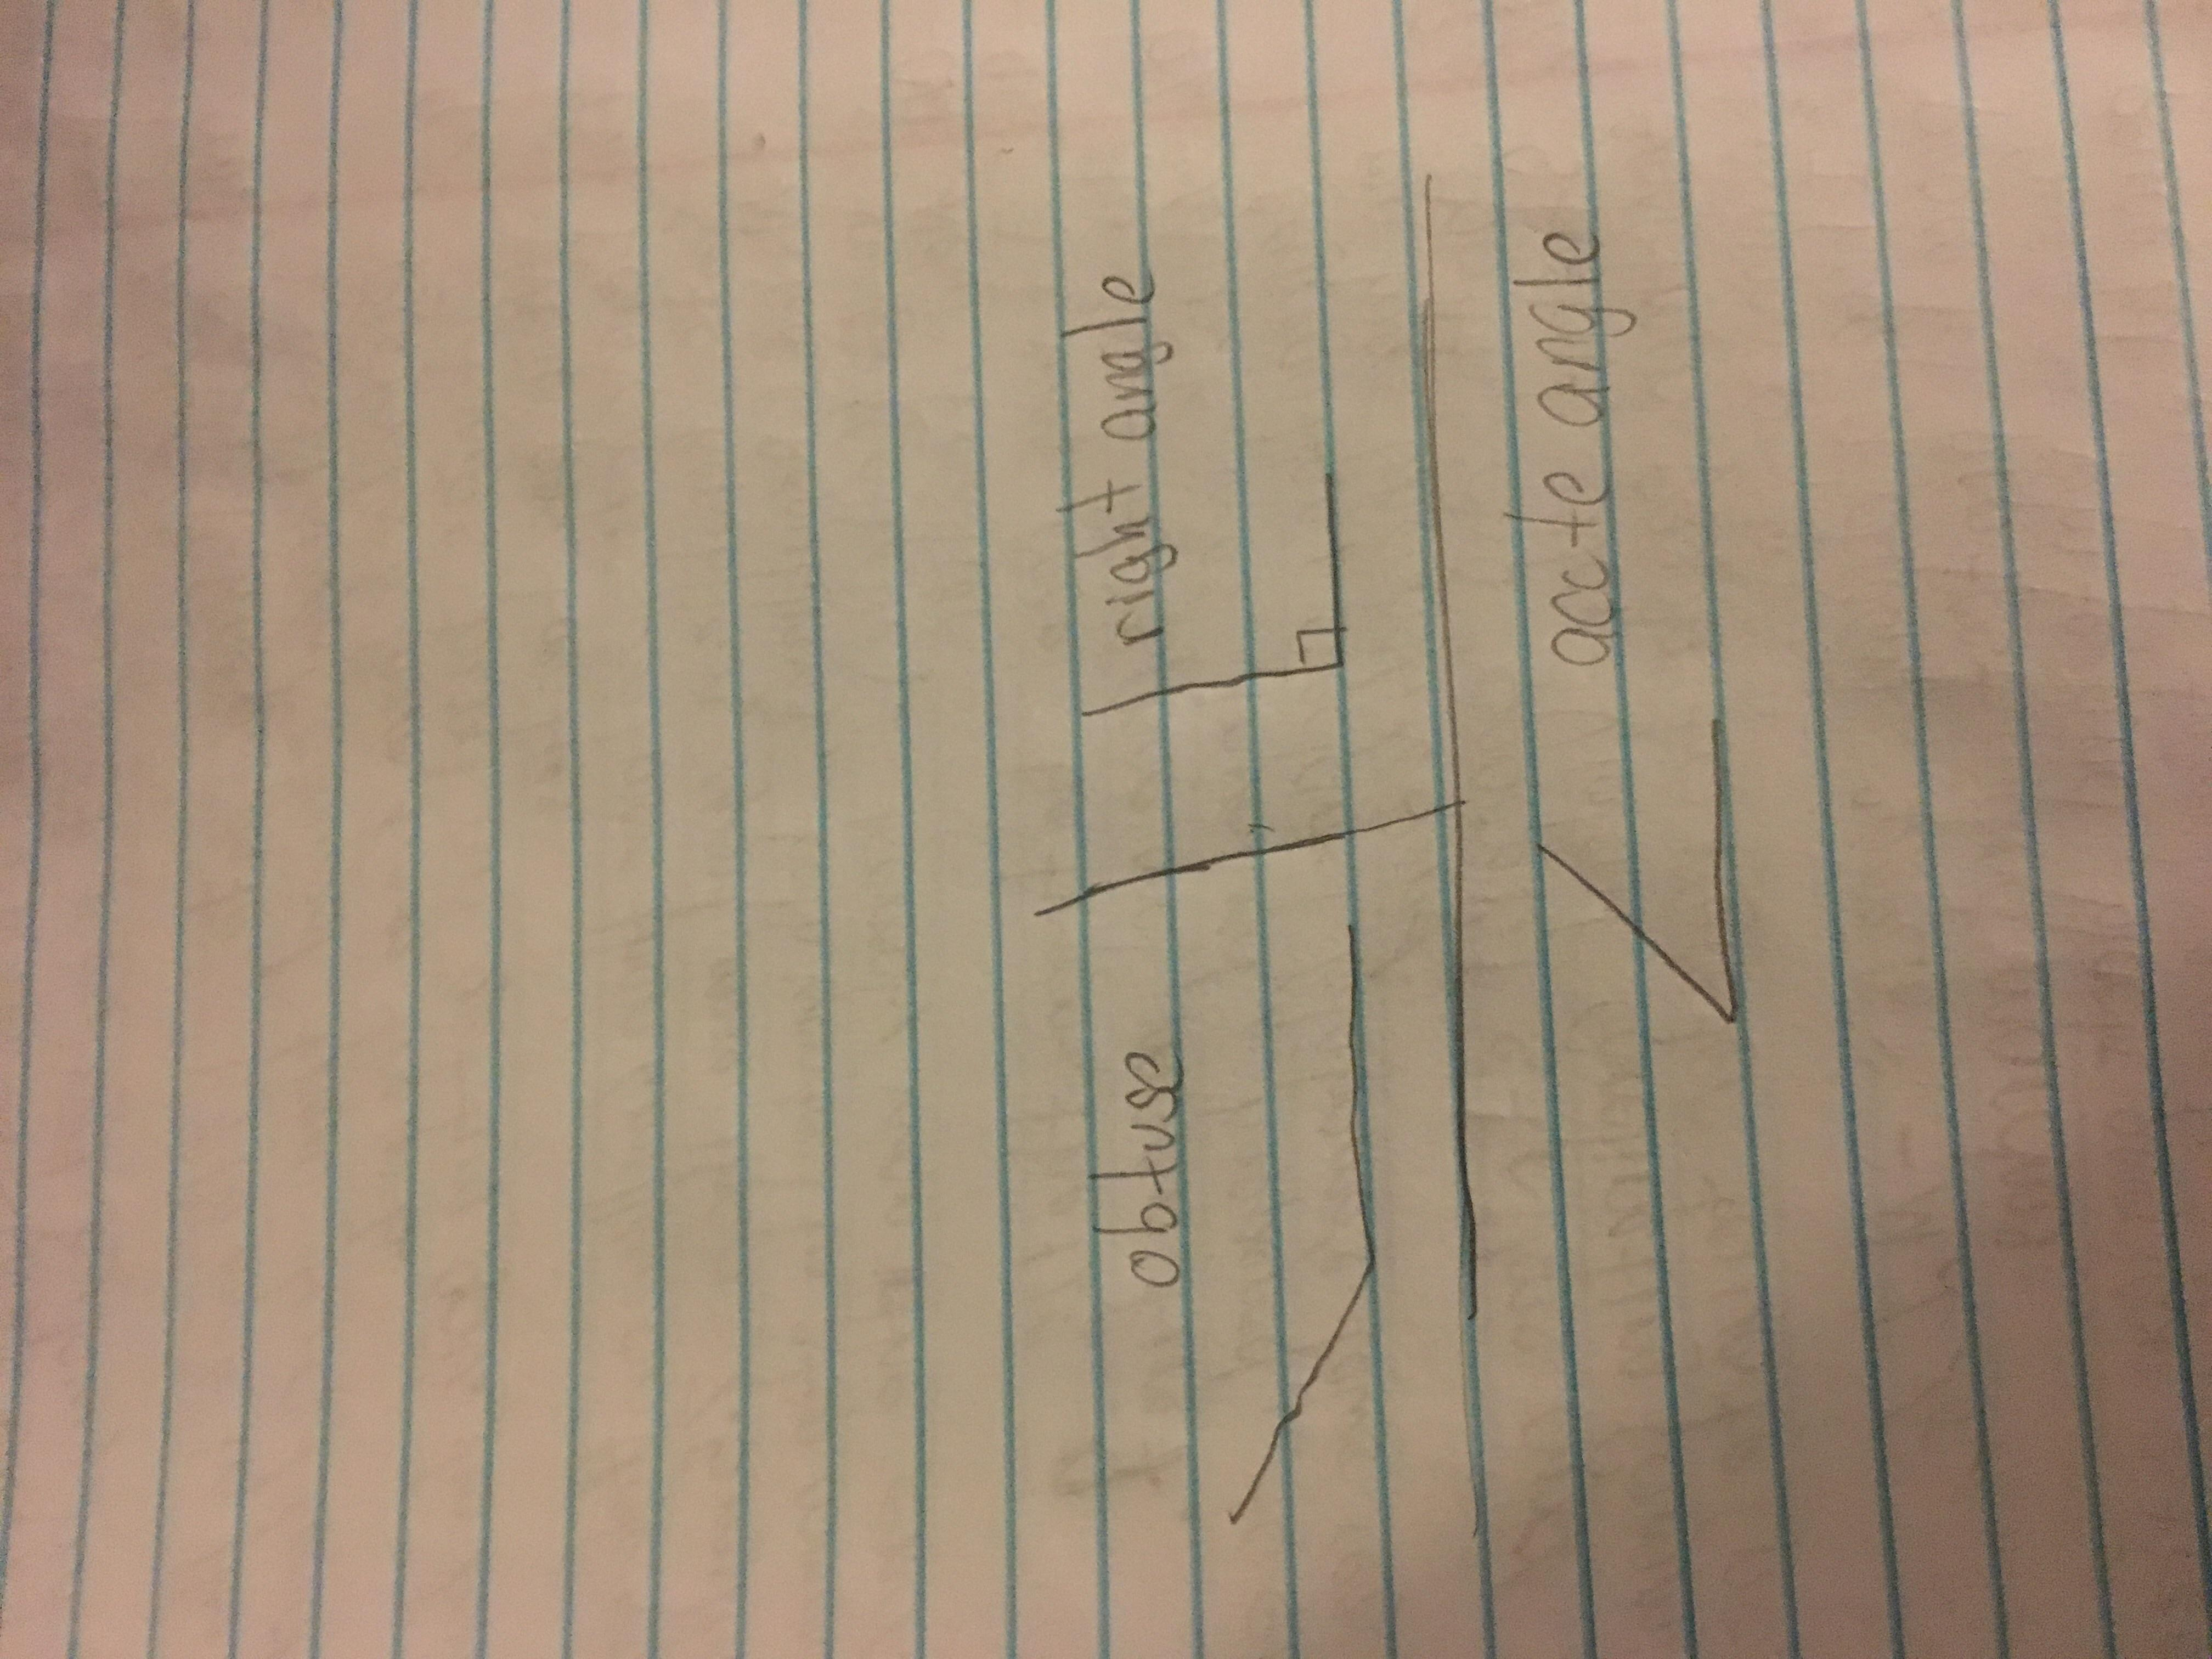 draw an example of a shape that has at least one right angle